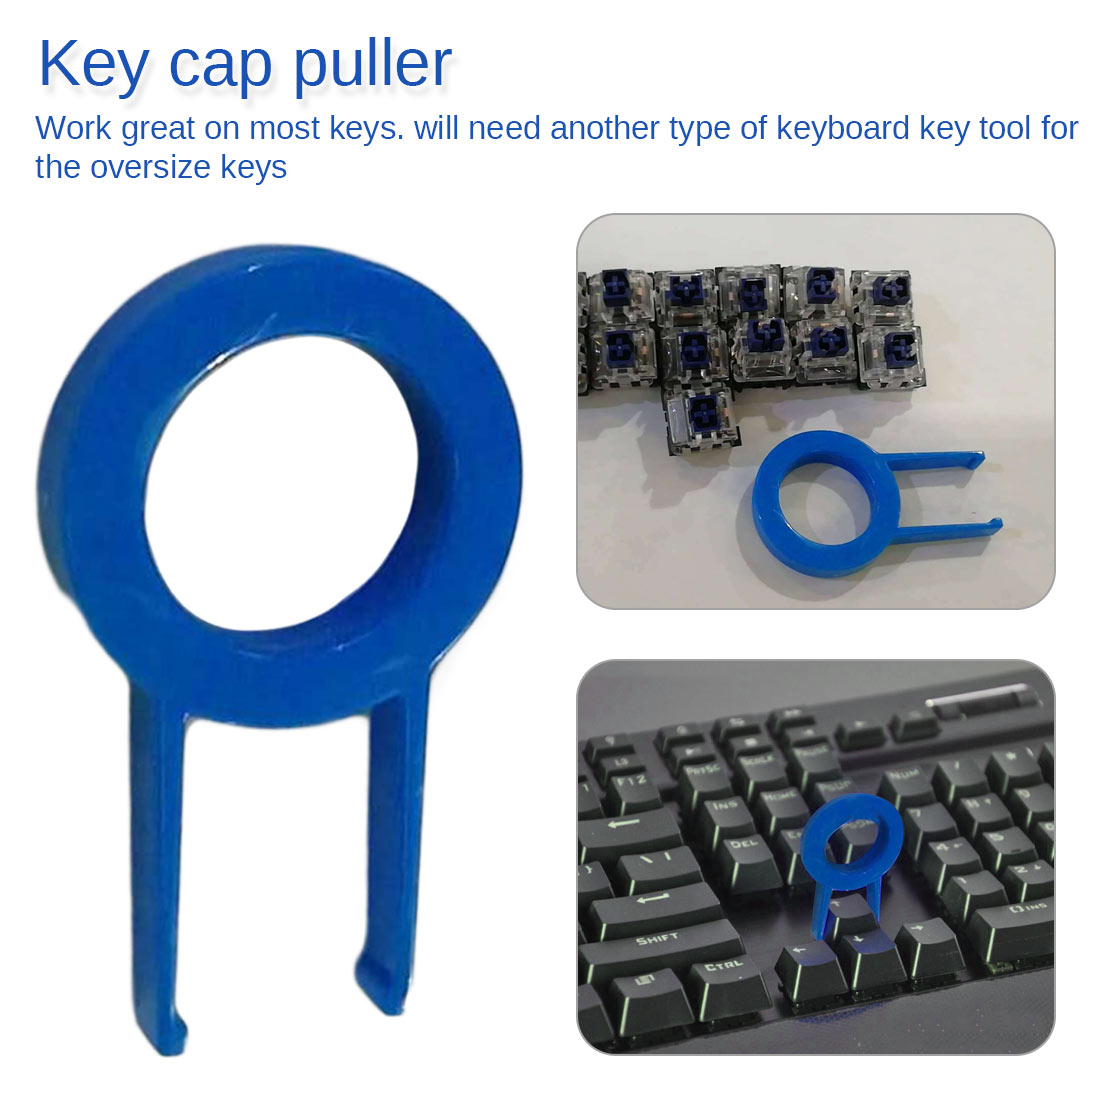 Mechanical Keycap Puller Remover For Keyboards Key Cap Fixing Tool Z09 Drop Ship Keycap Puller